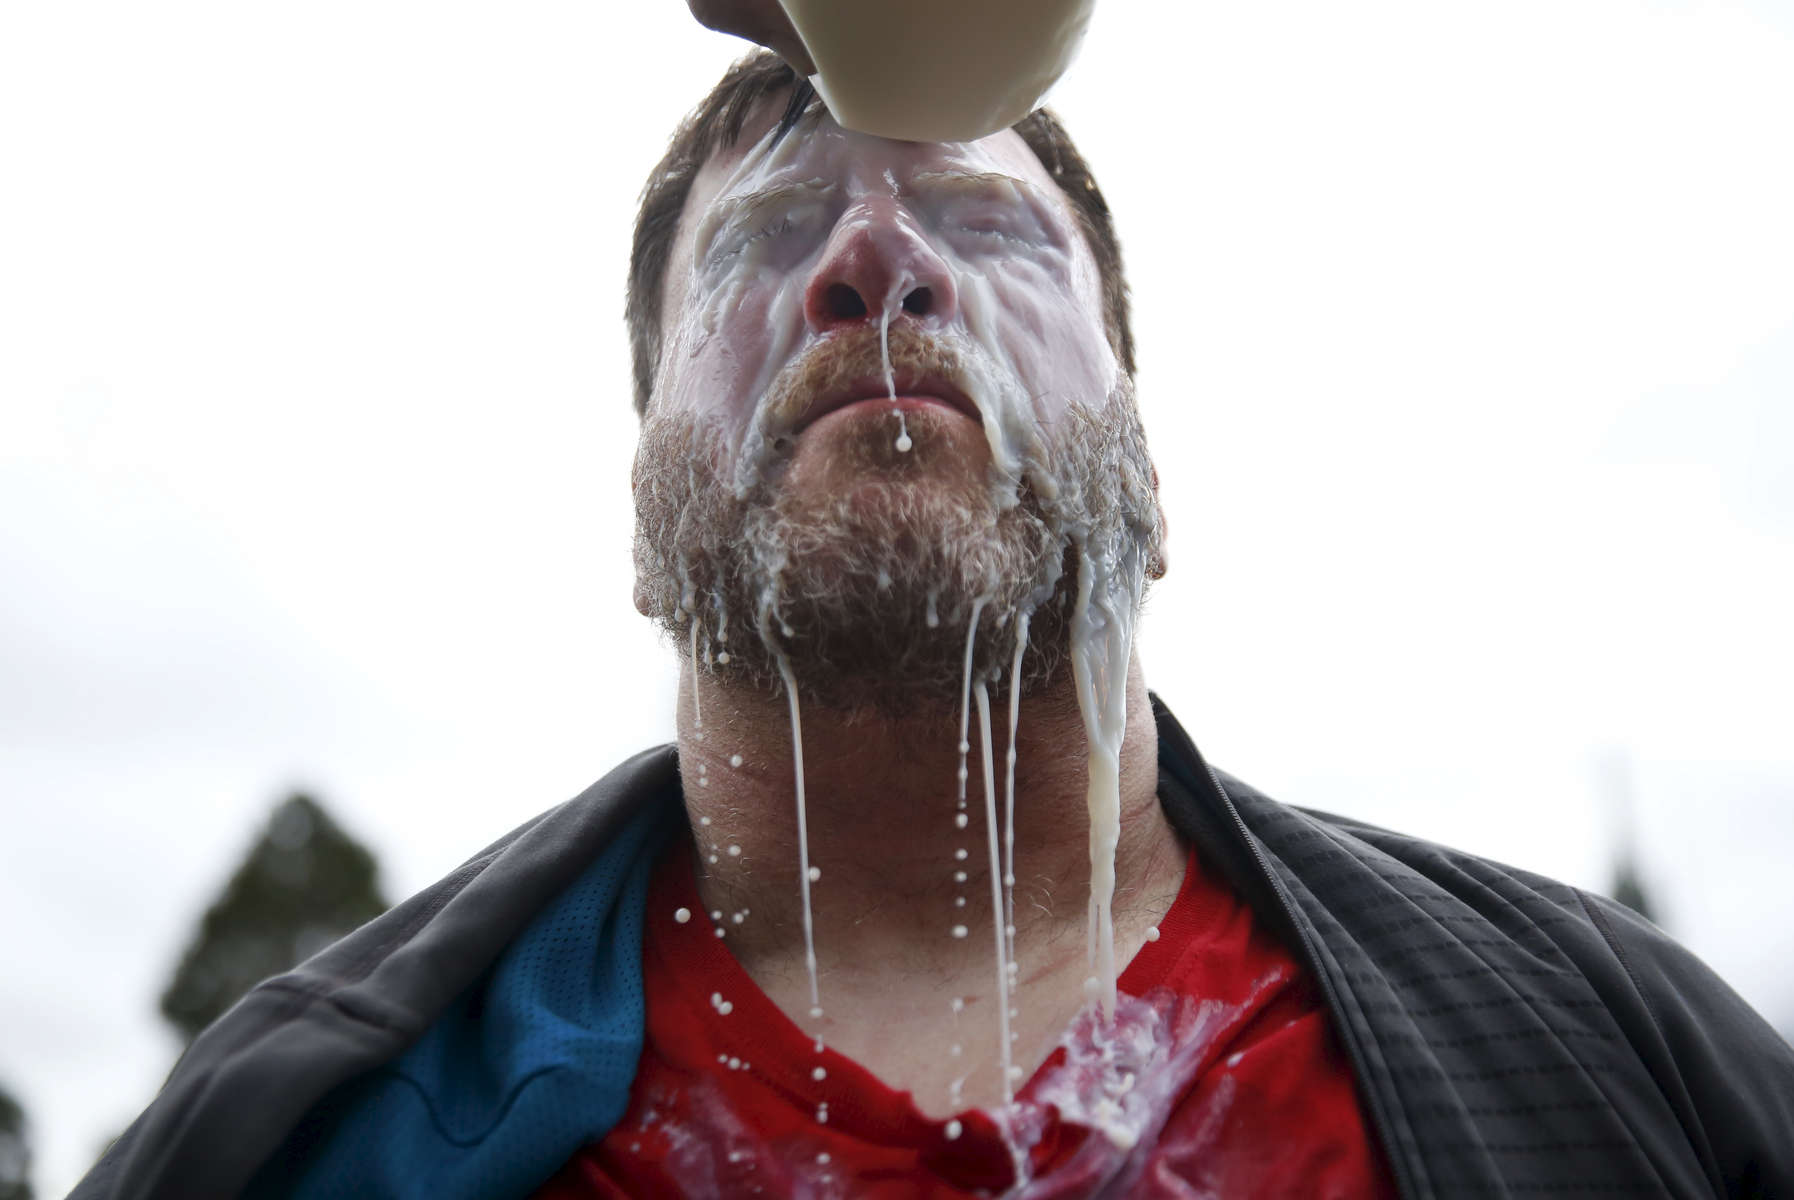 Eric Zarahn, a Trump supporter, gets milk poured on his eyes after getting pepper-sprayed during a pro-President Donald Trump rally and march at the Martin Luther King Jr. Civic Center park March 4, 2017 in Berkeley, Calif.